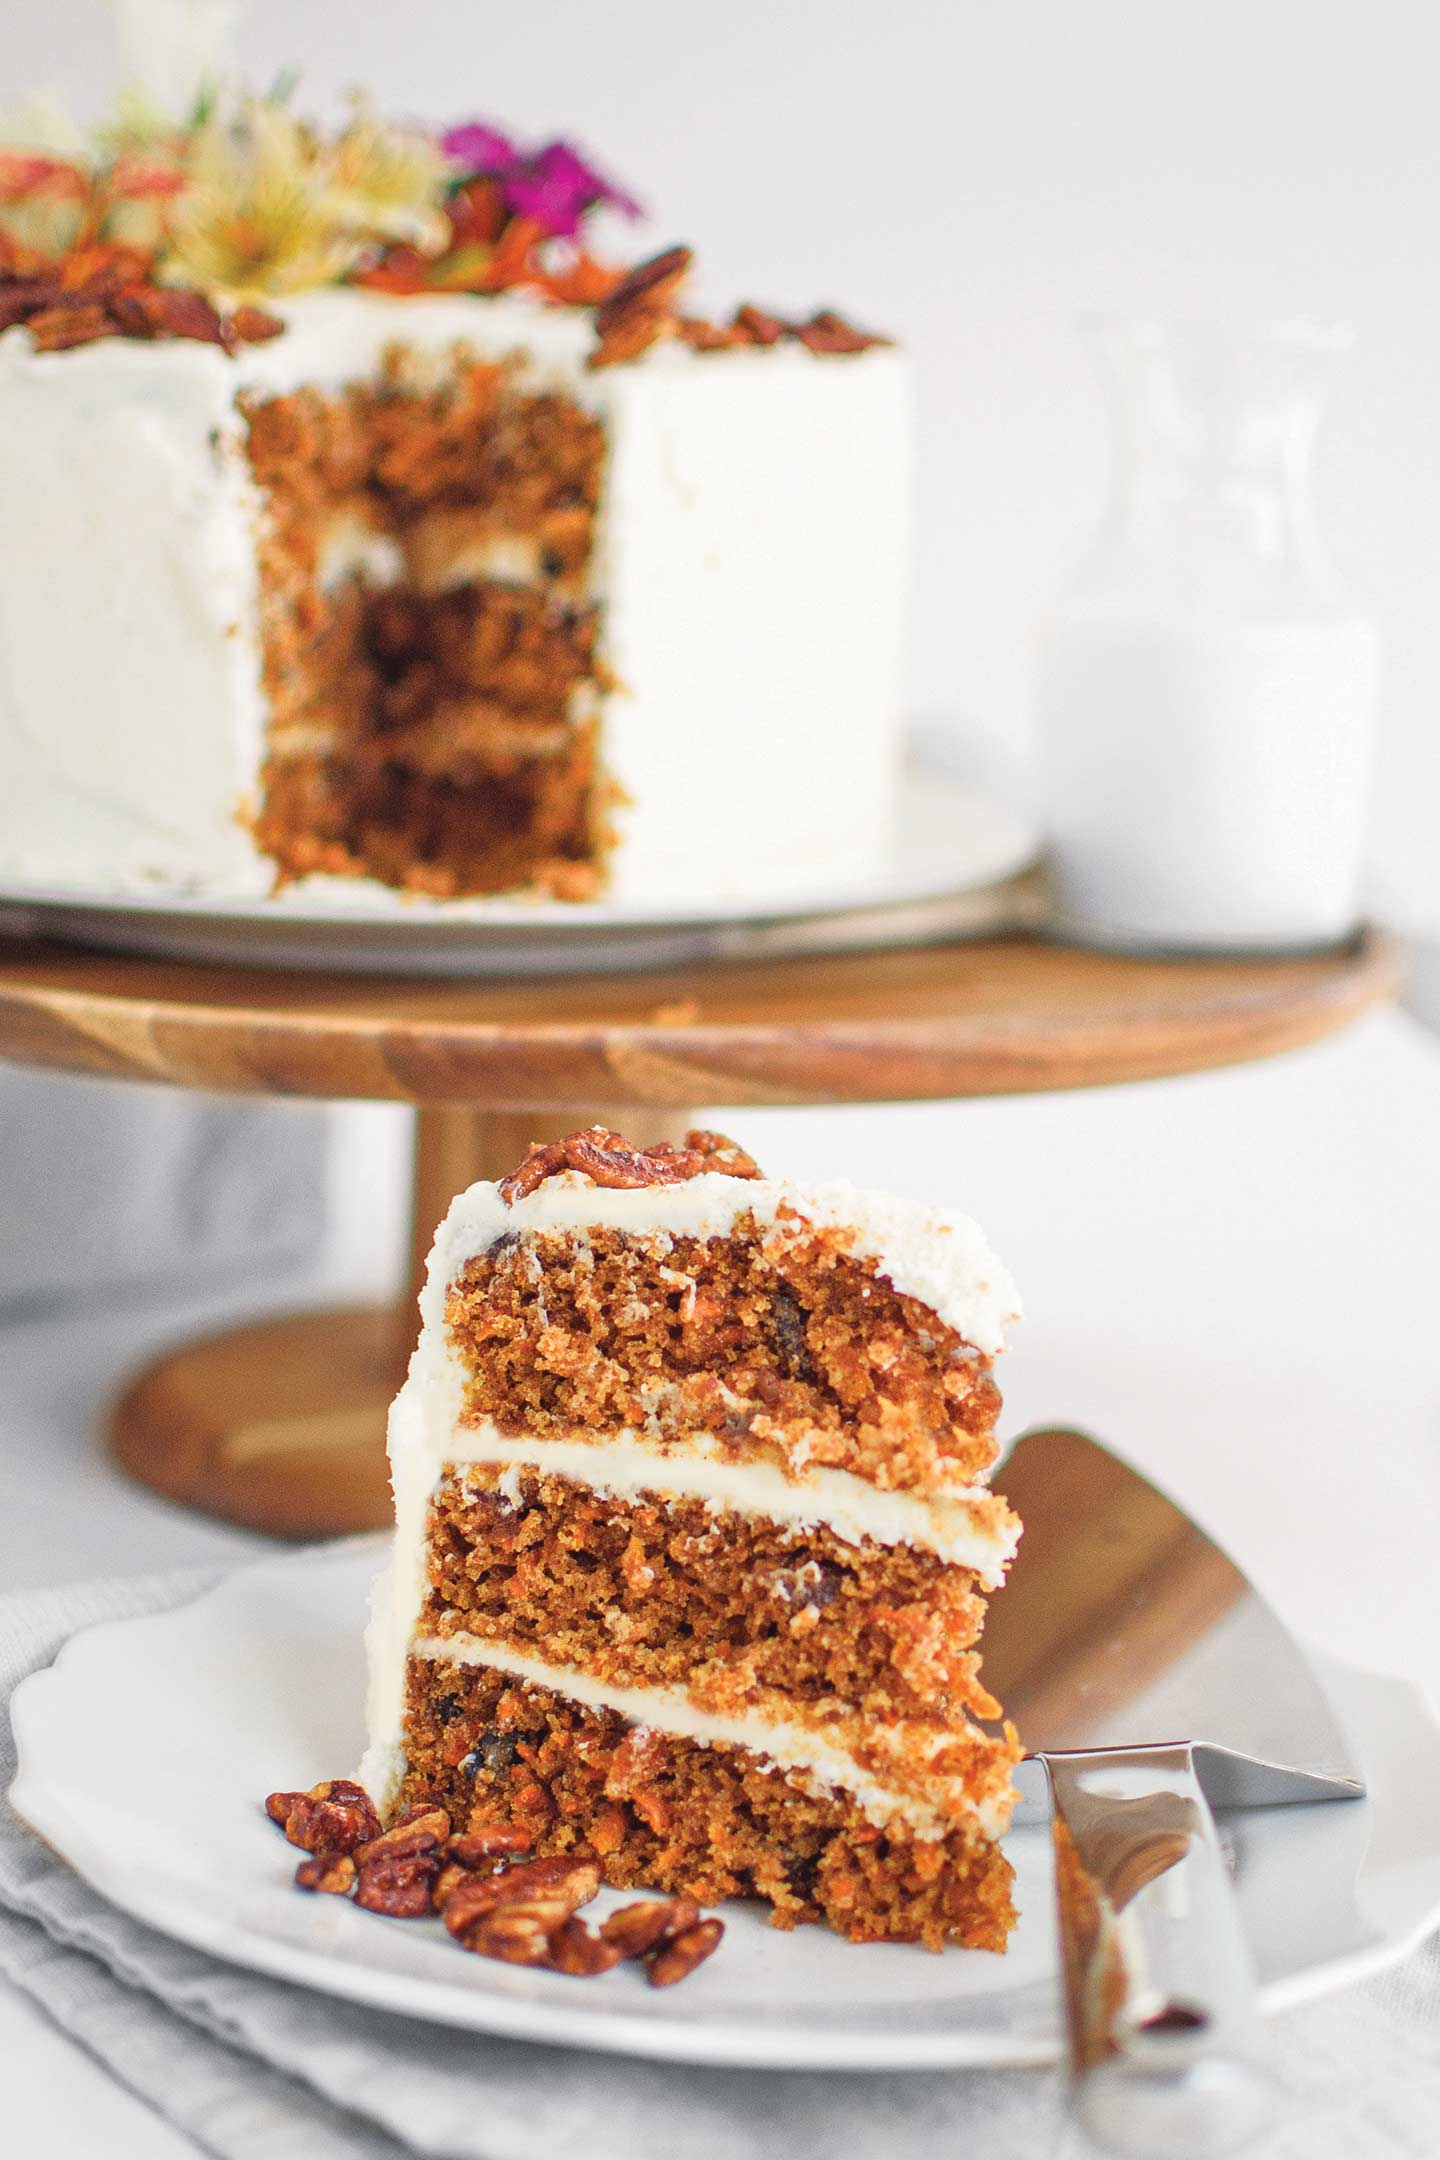 Alesha Manning's Carrot Cake with Candied Bourbon pecans